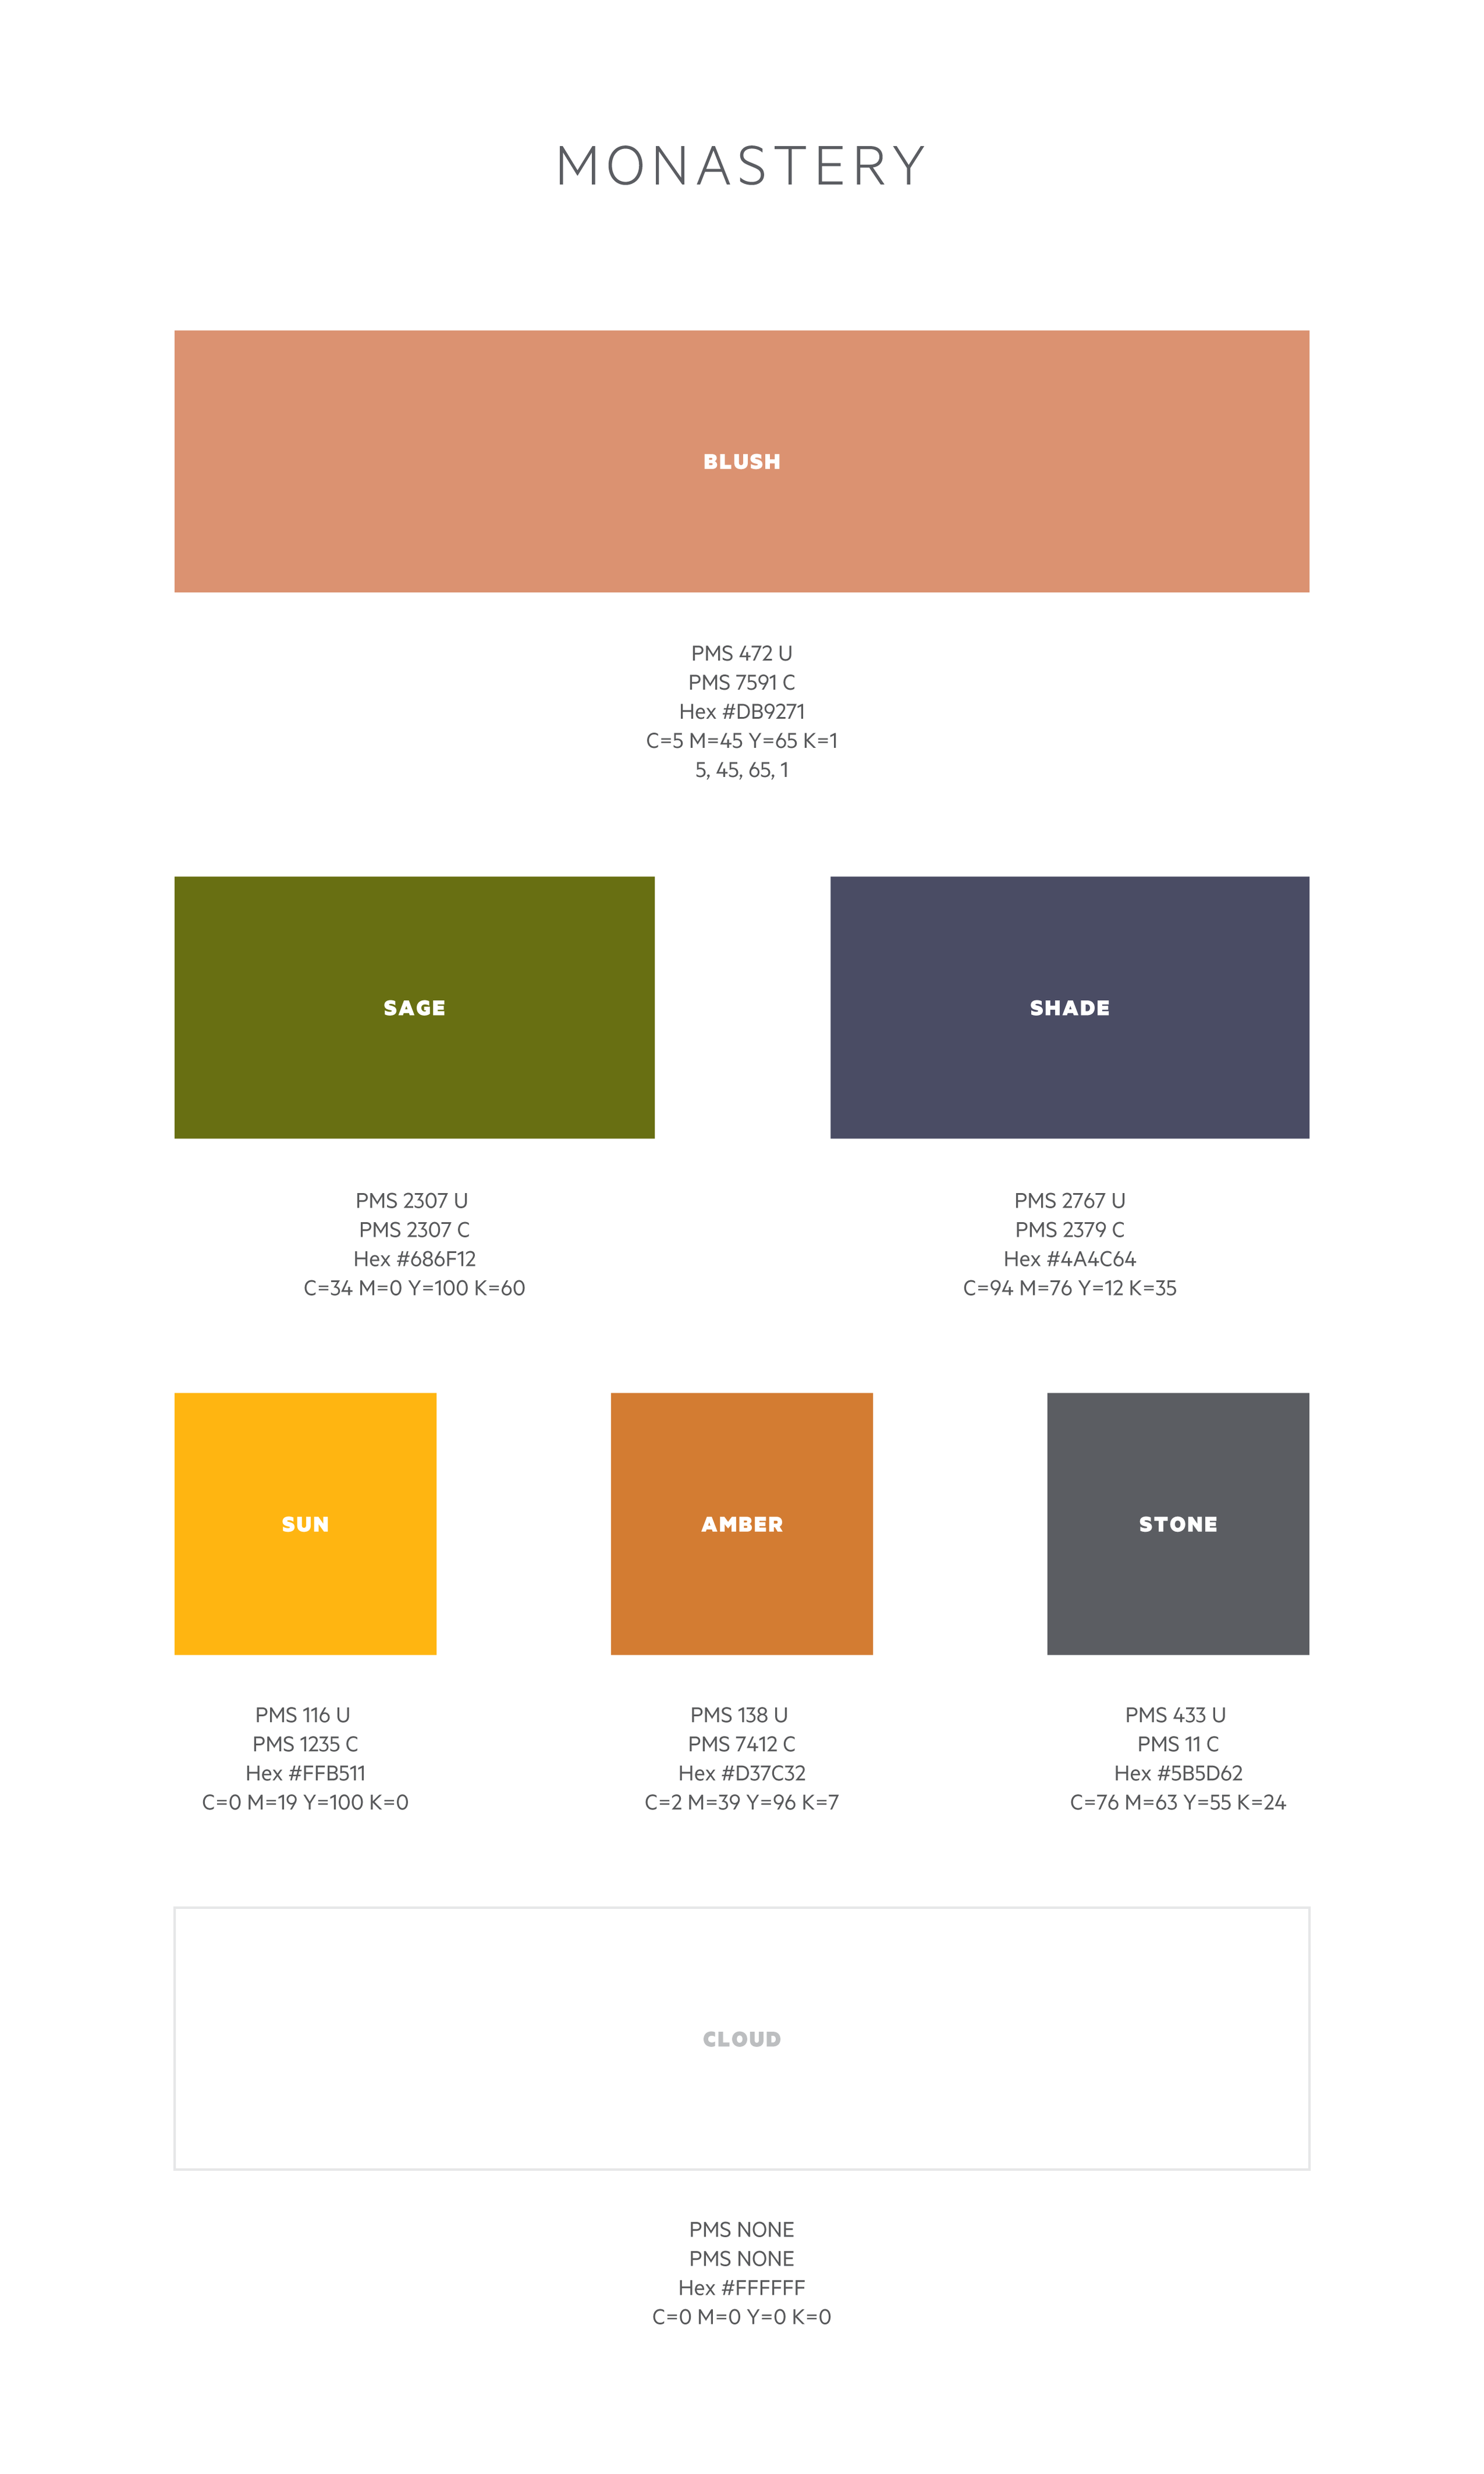 Final color palette and hierarchy